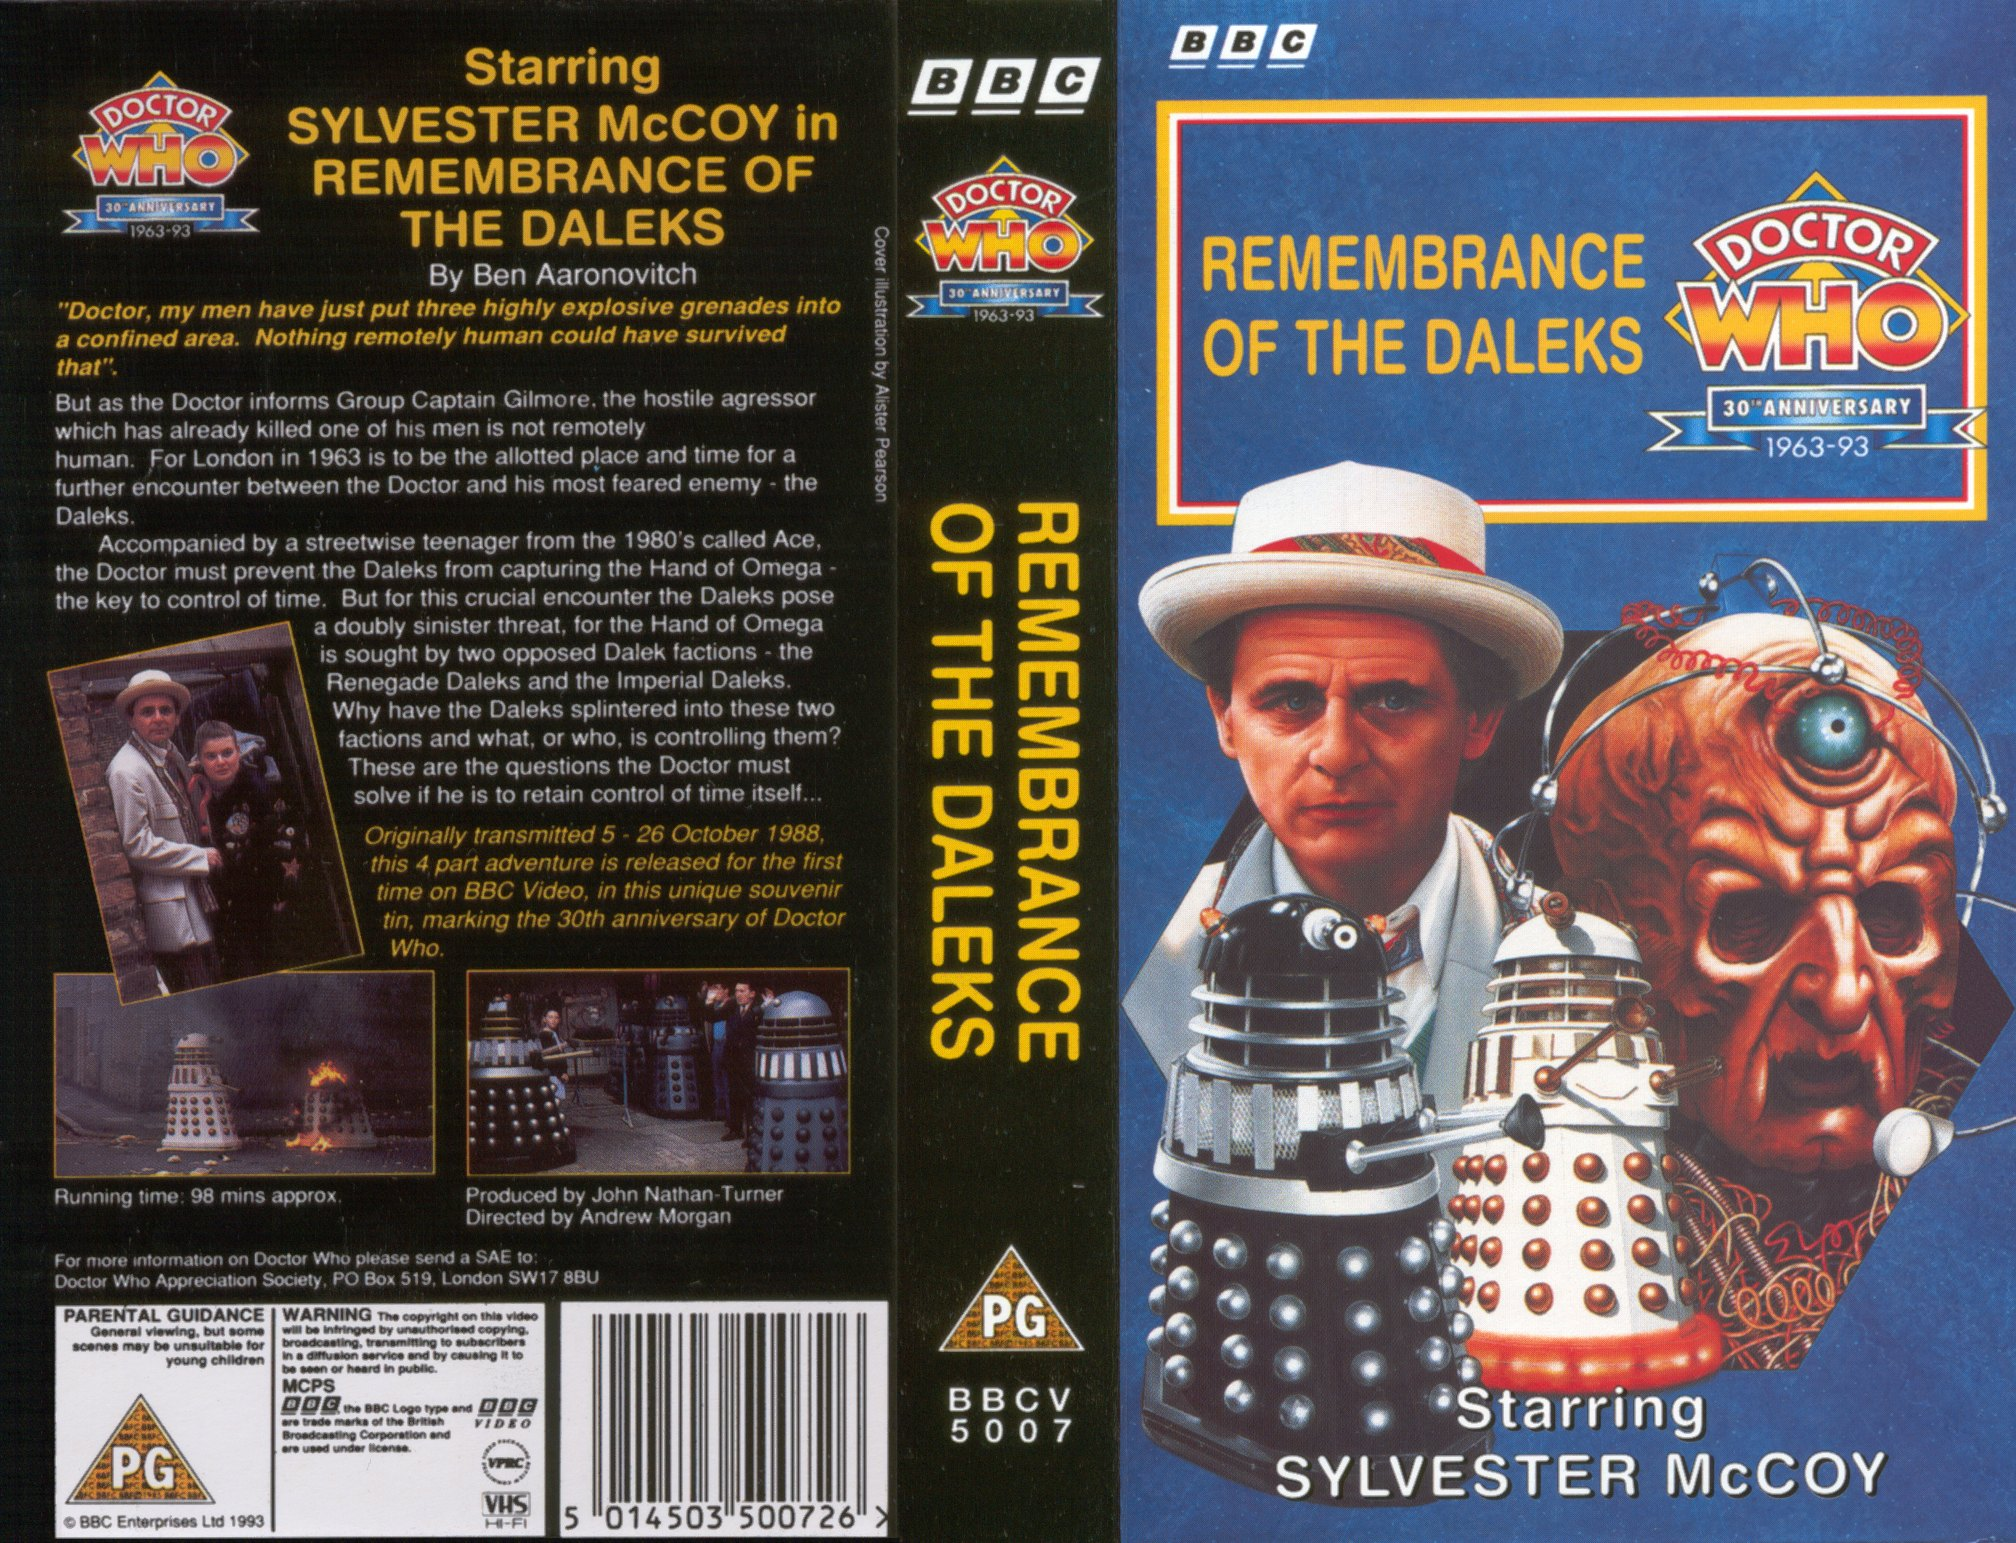 Remembrance of the Daleks covers